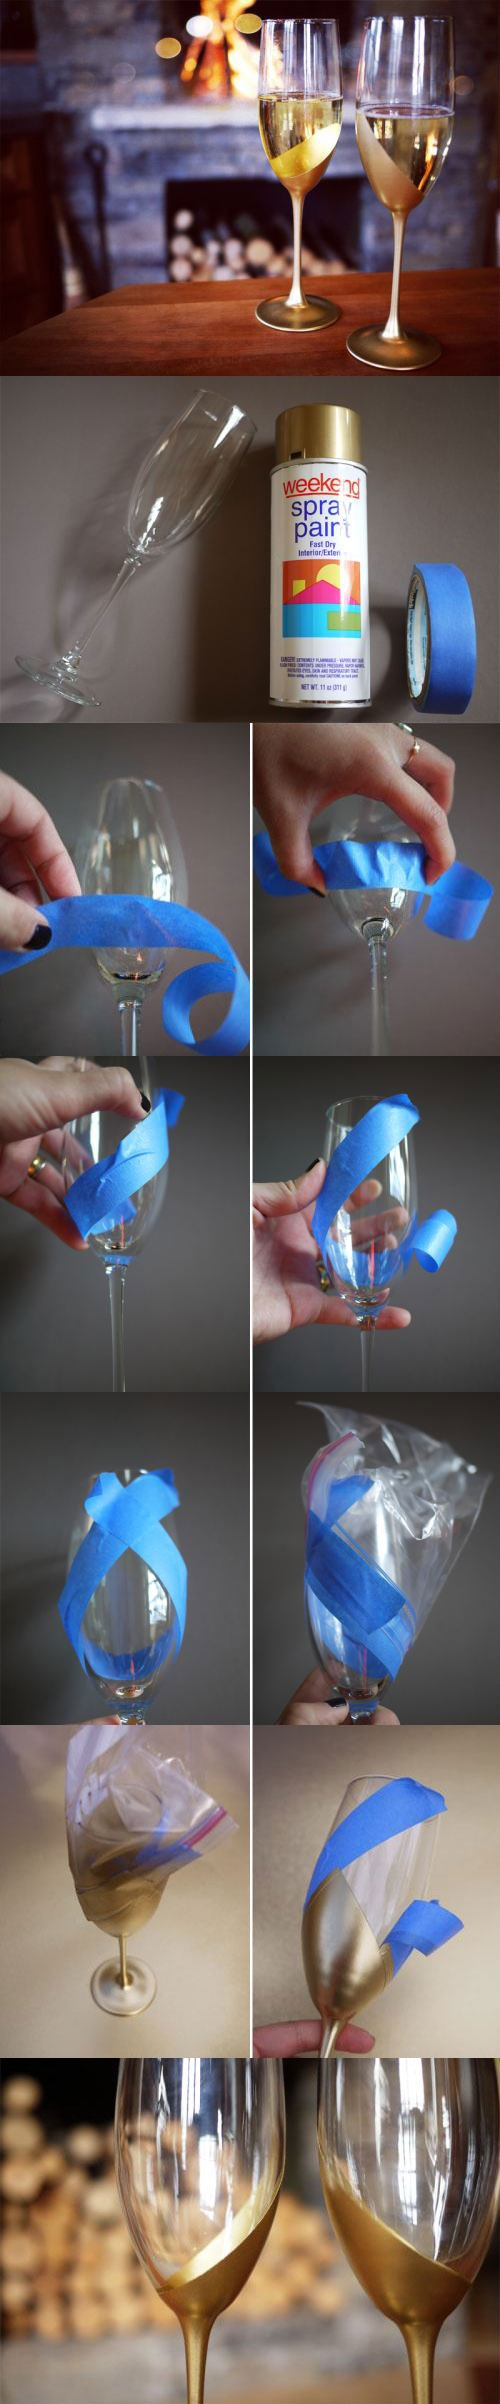 Spray paint champagne glasses